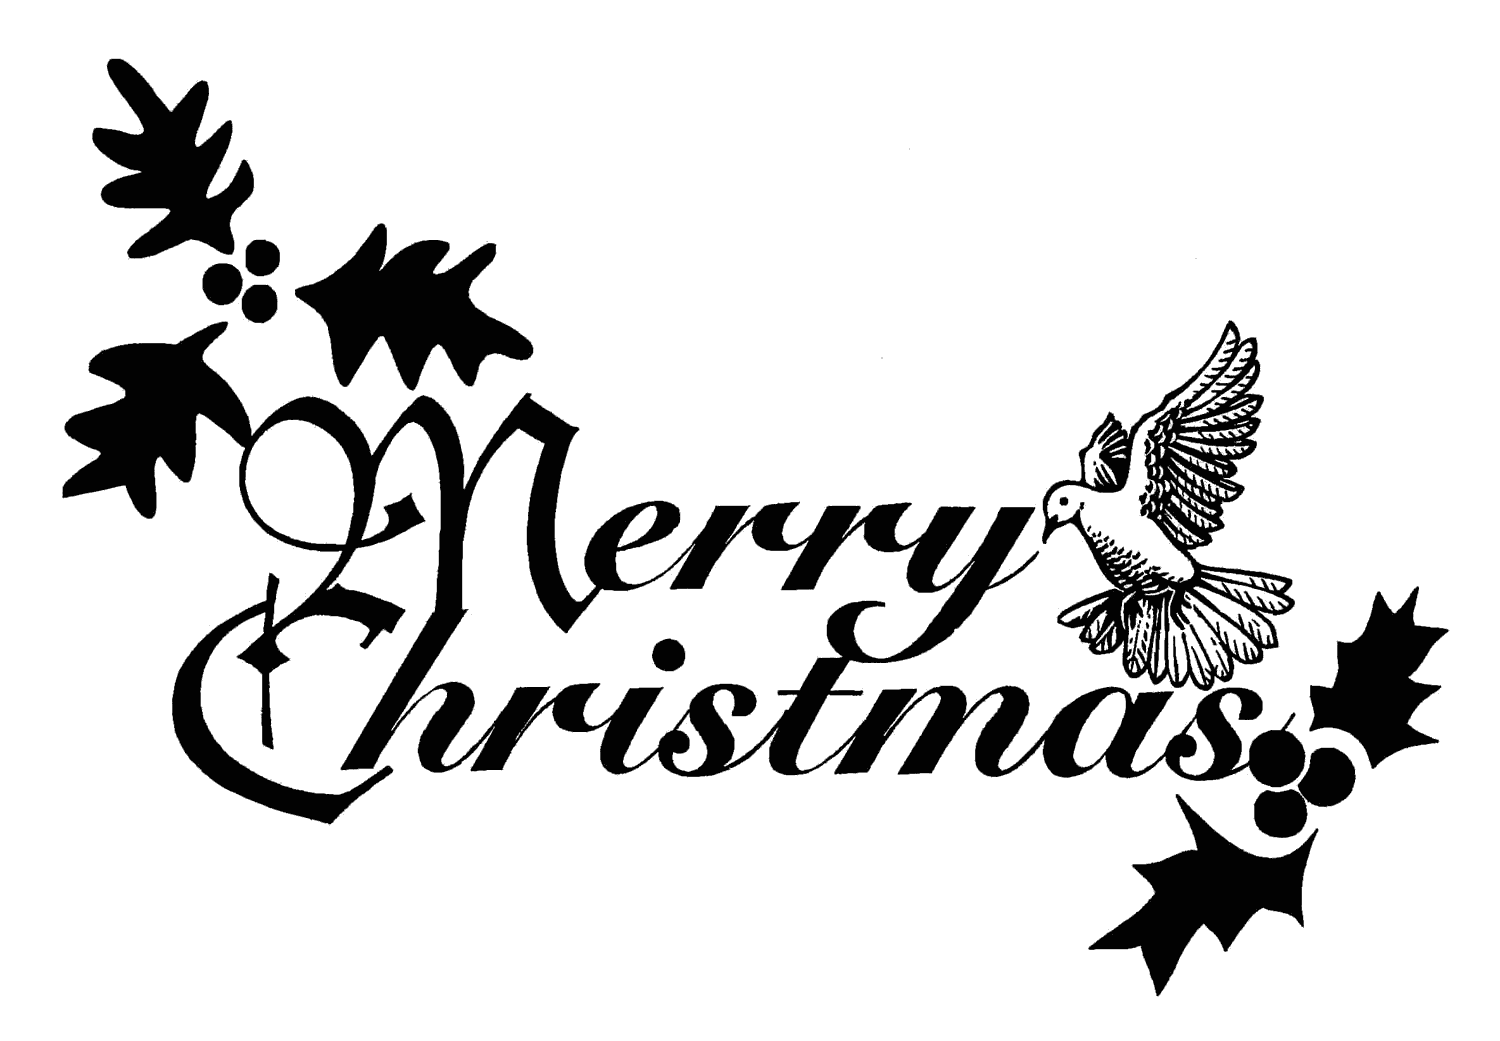 christmas logos free christmas logos clip art merry christmas and happy new year 2018 - Merry Christmas Logos